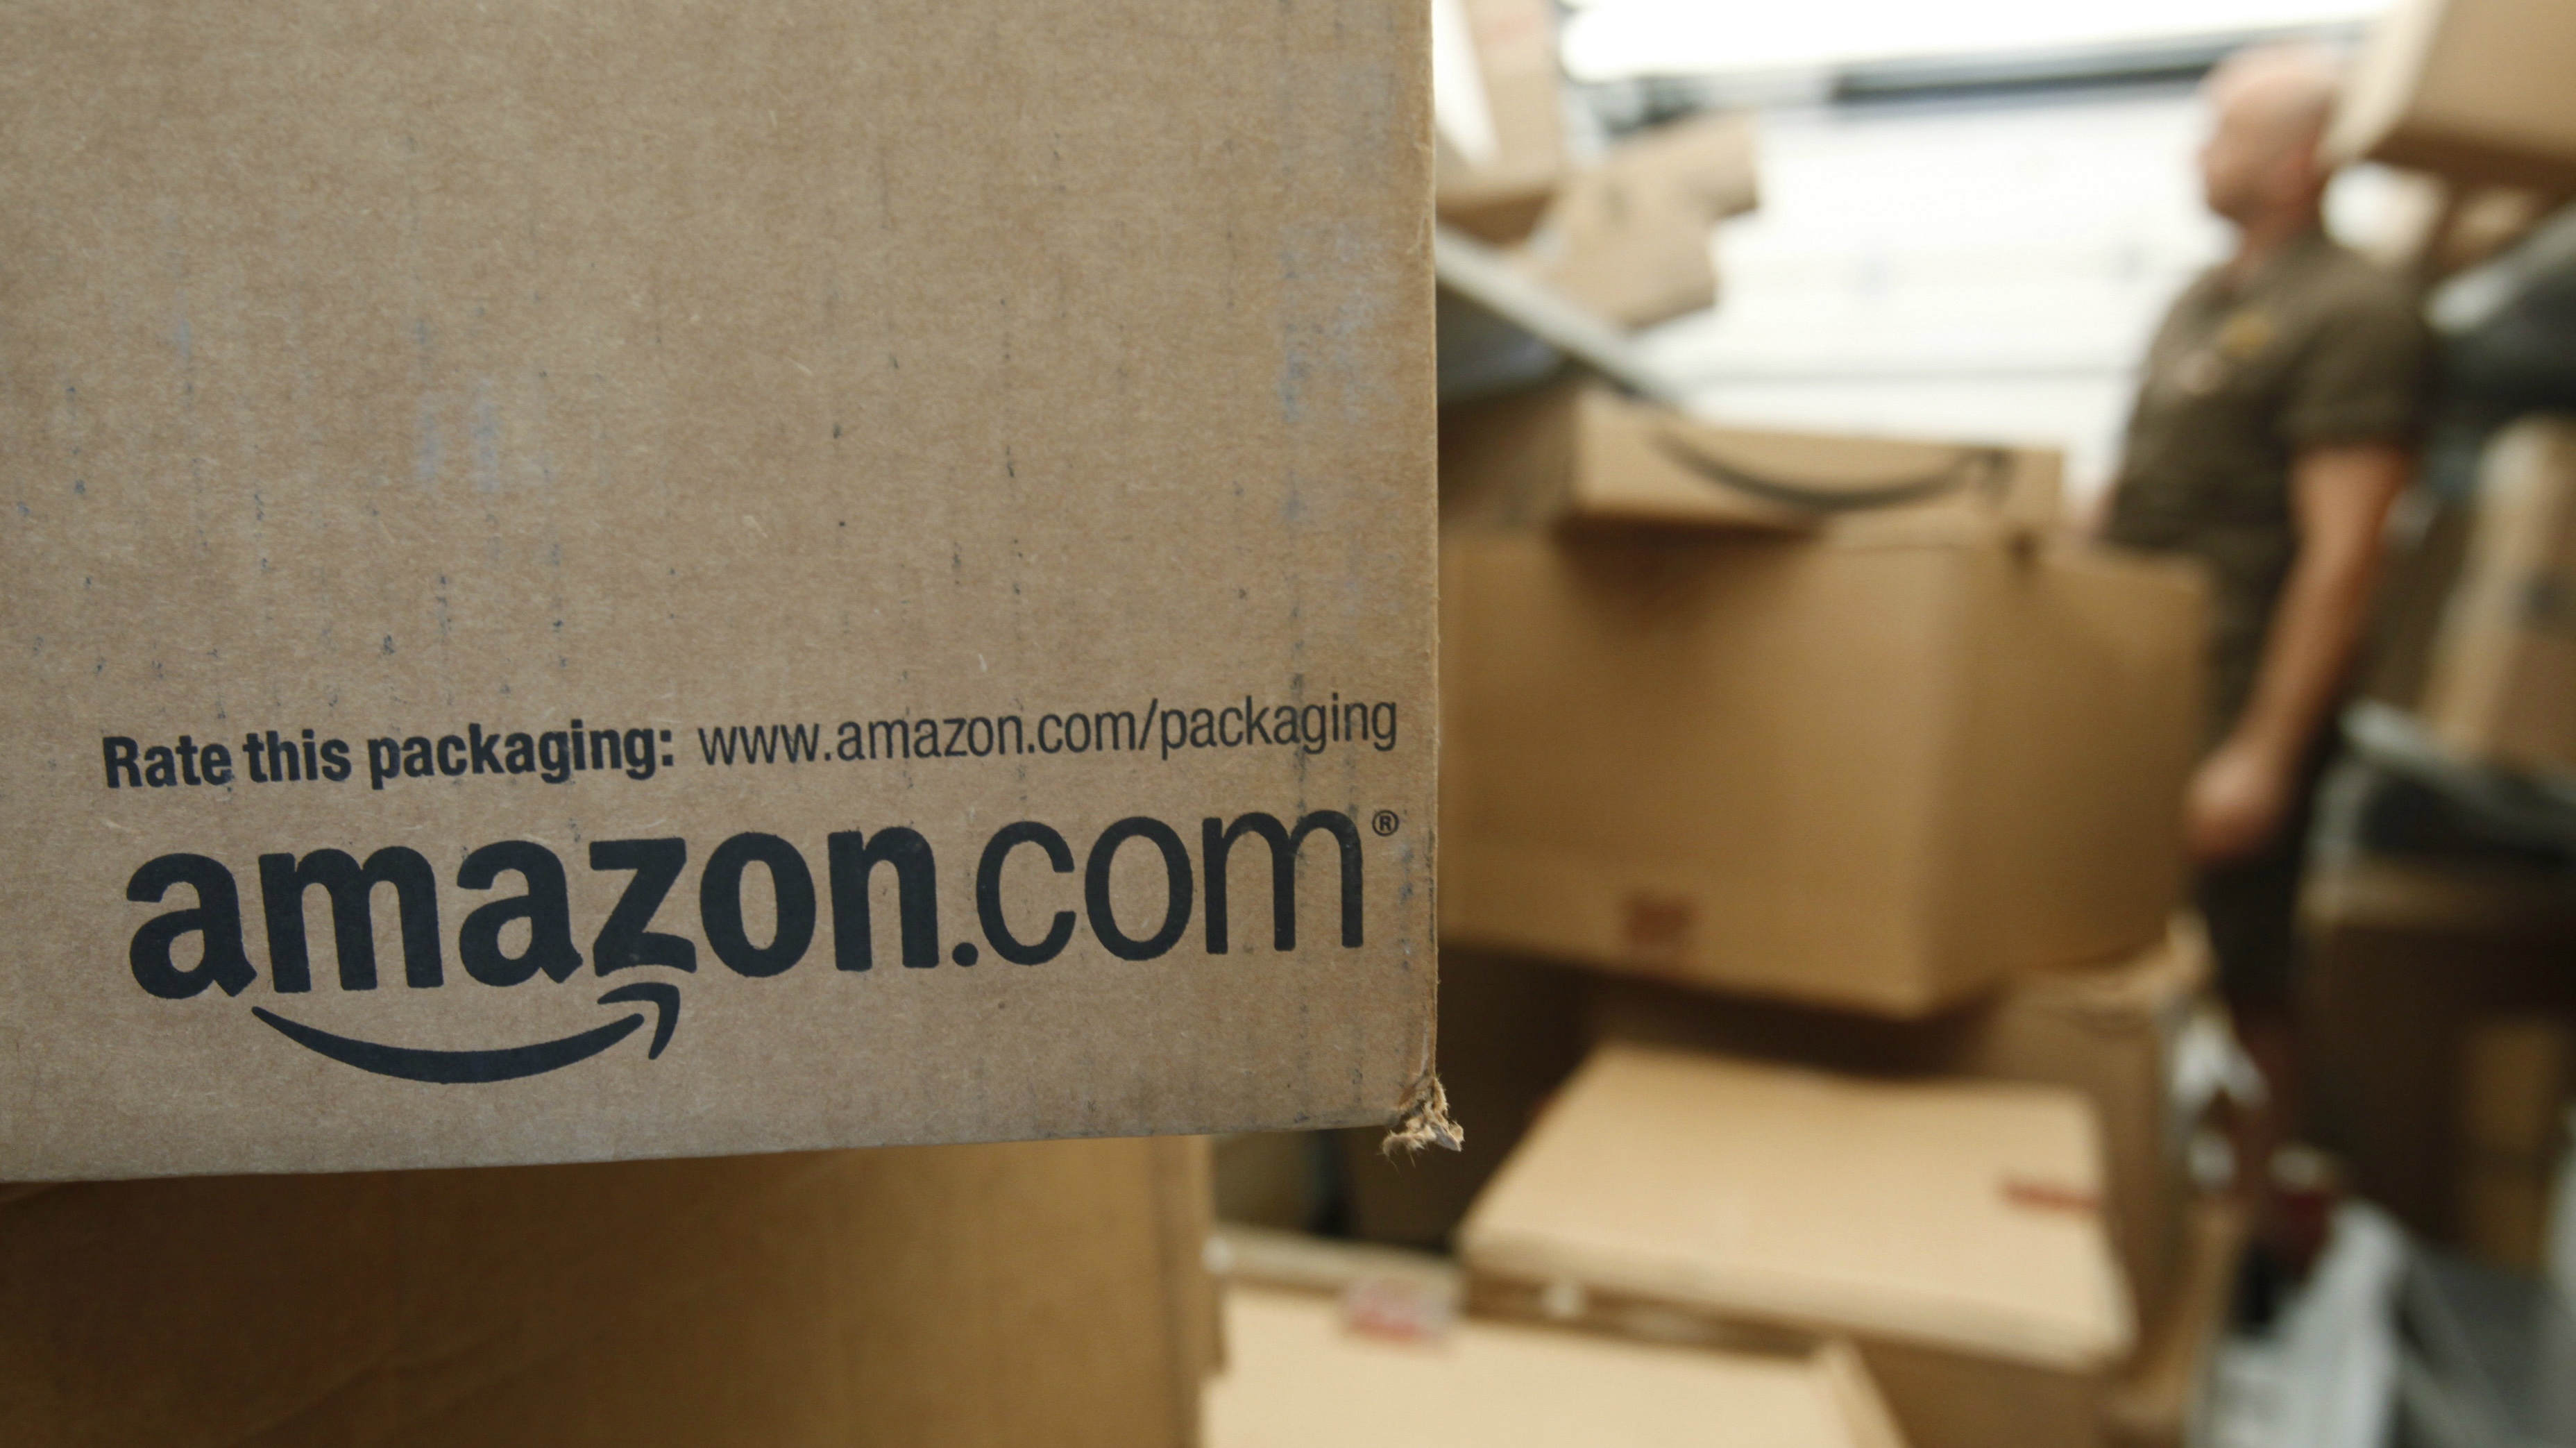 Amazon joins Walmart and Costco as retailers who bring in at least $100 billion in sales.